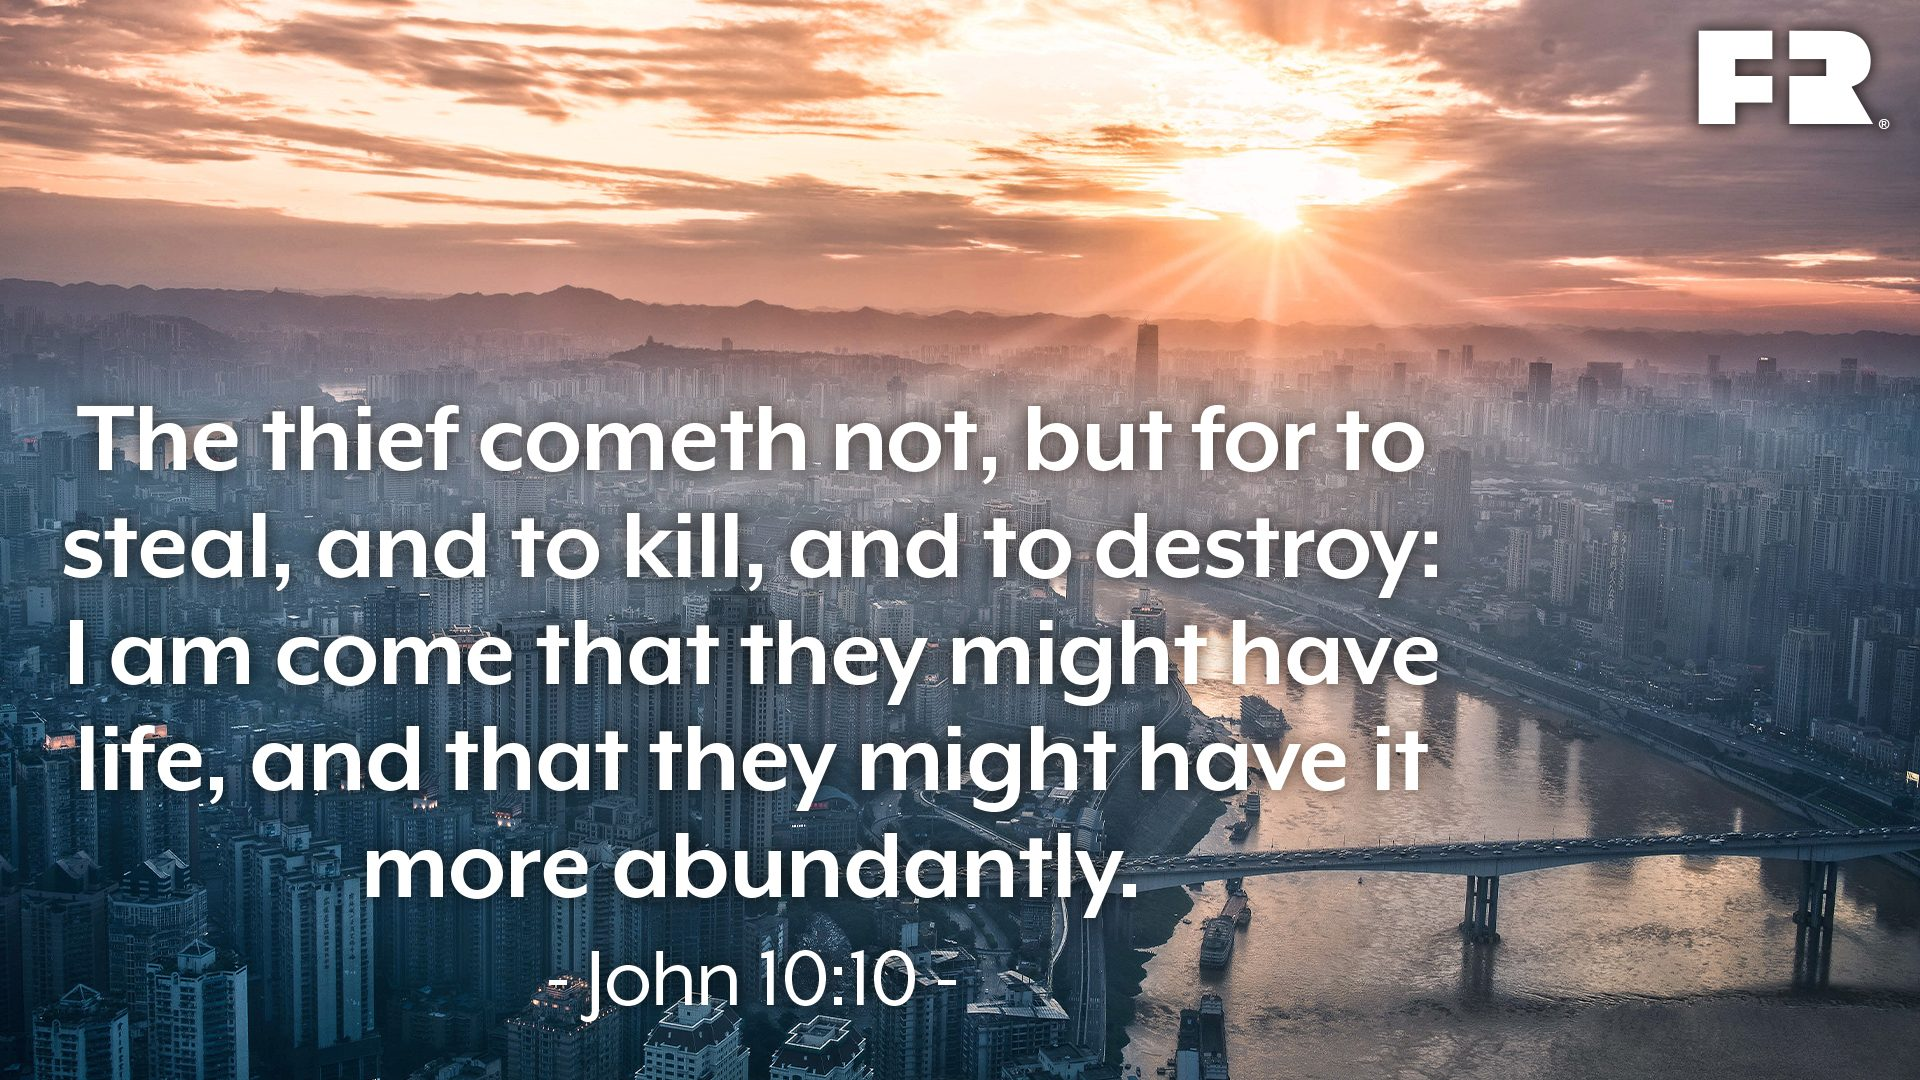 """The thief cometh not, but for to steal, and to kill, and to destroy: I am come that they might have life, and that they might have it more abundantly."""